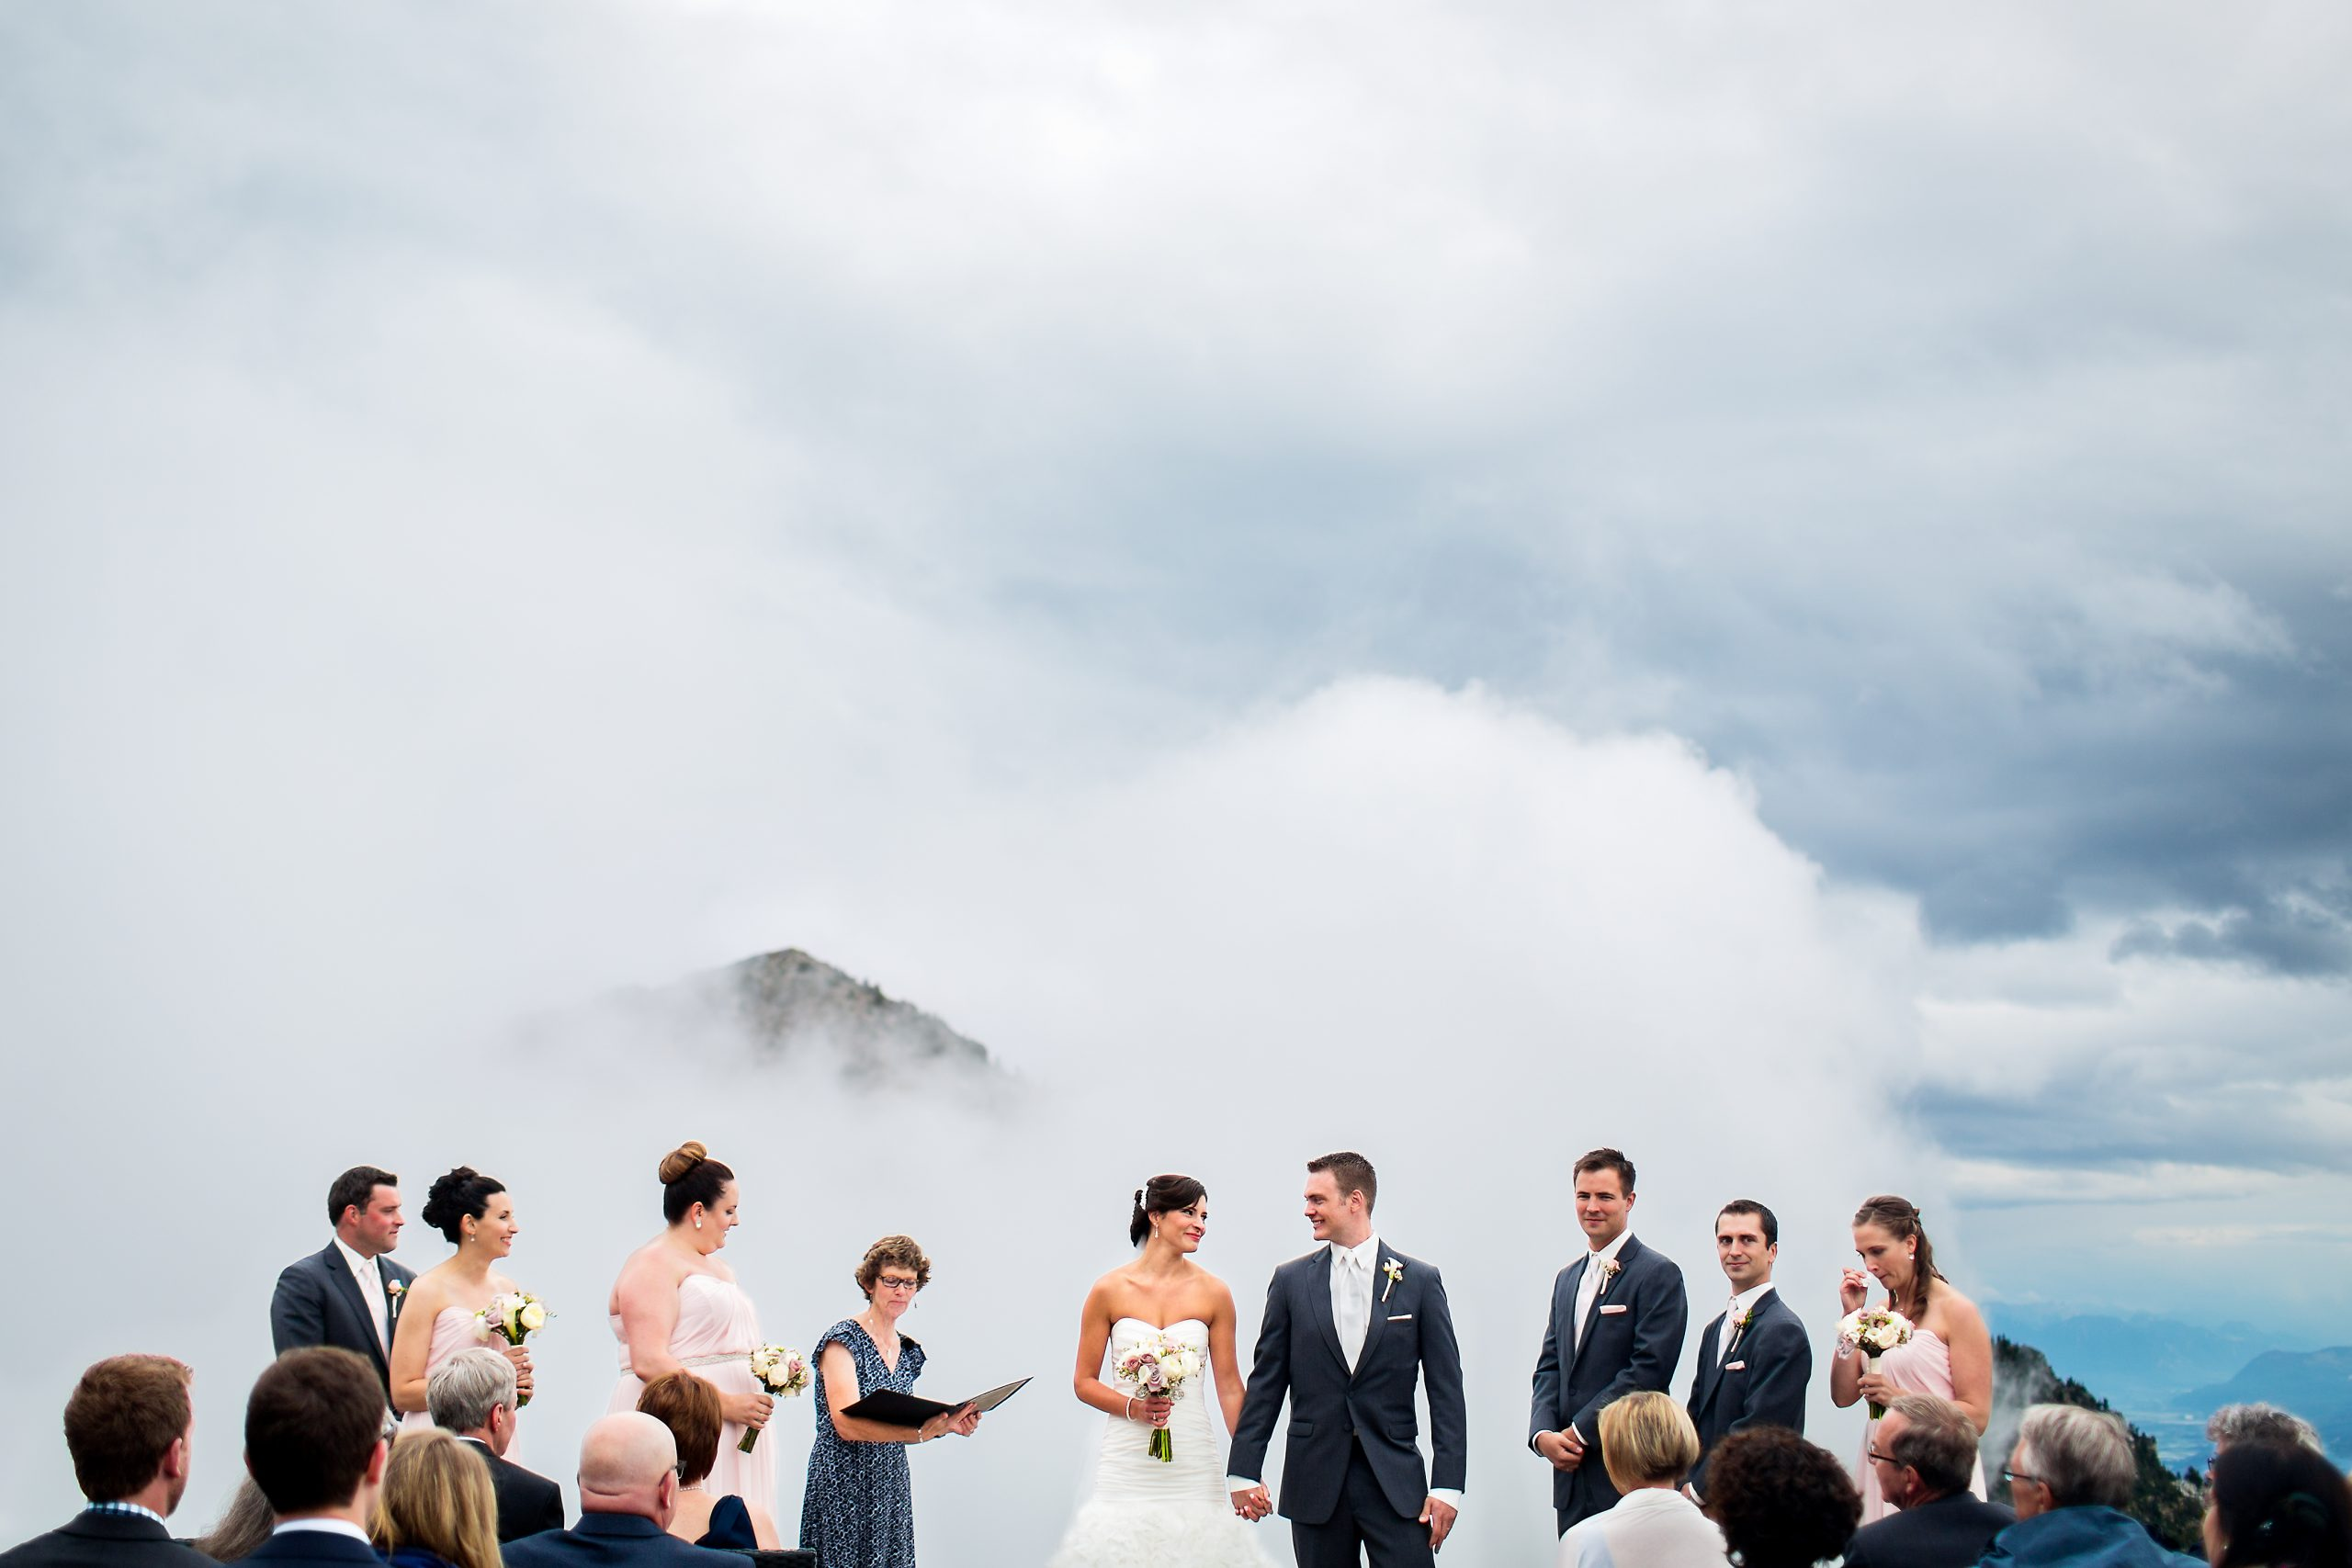 Wedding ceremony on misty mountaintop